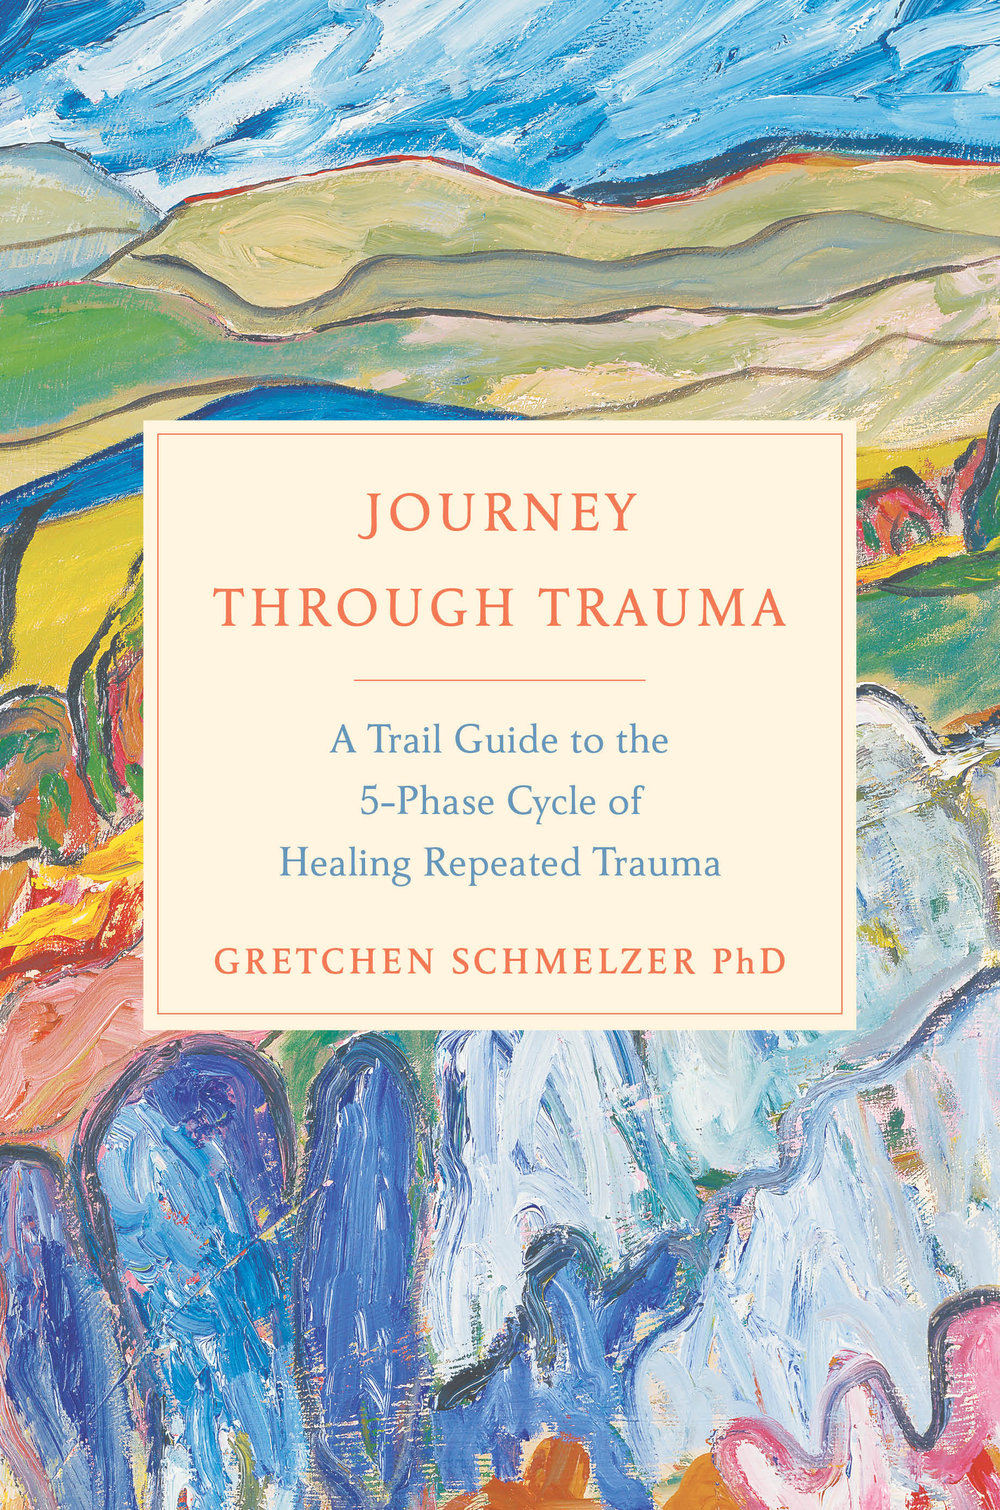 Journey Through Trauma available for Pre-order Now.